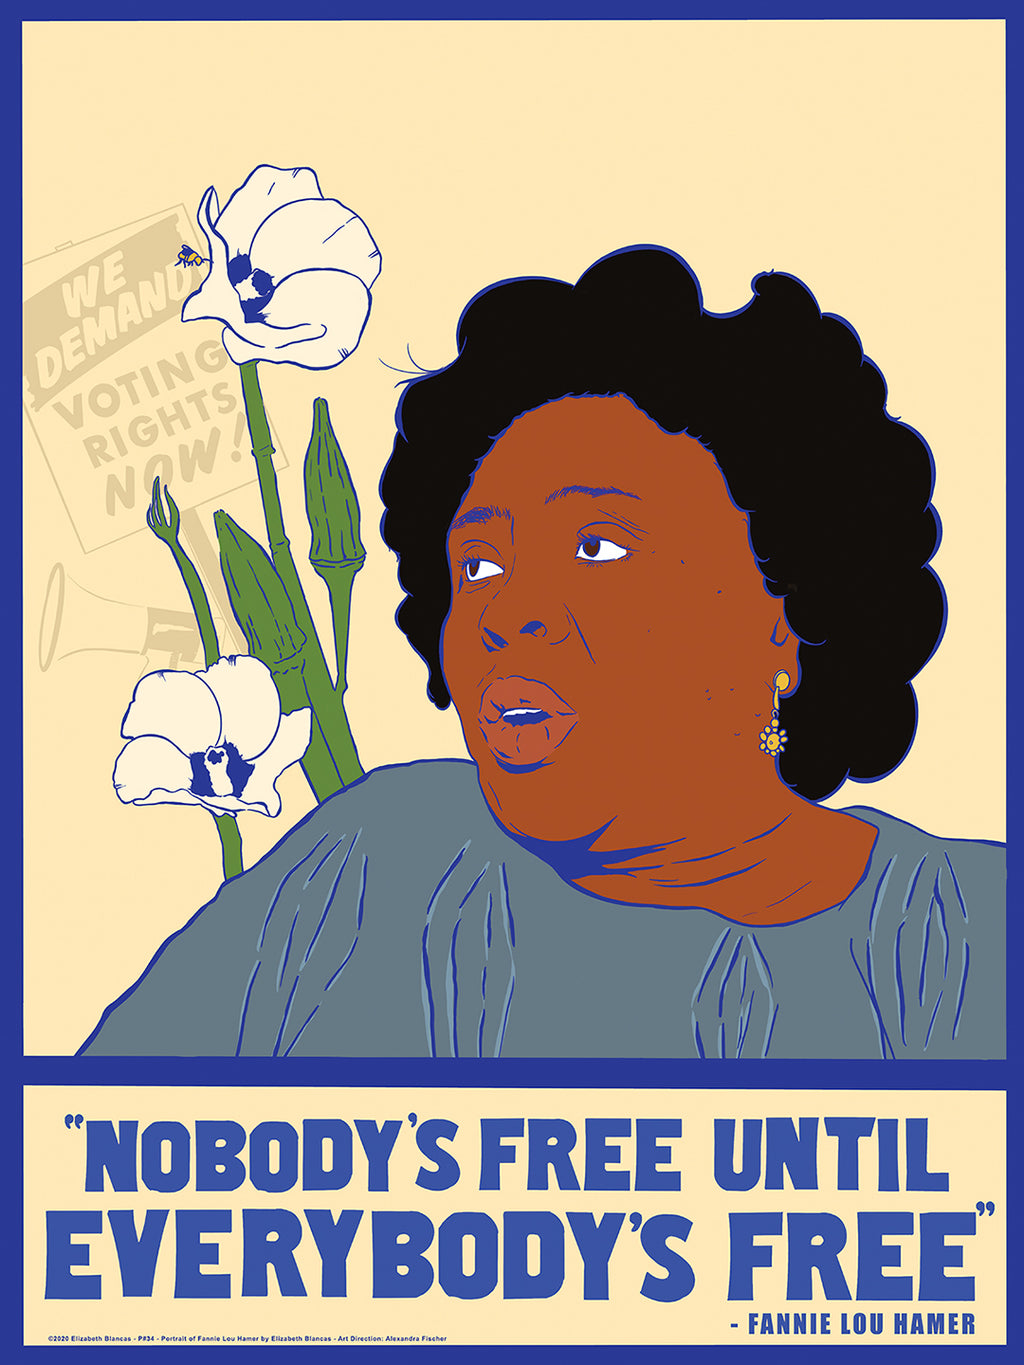 19th Amendment Poster by Elizabeth Blancas